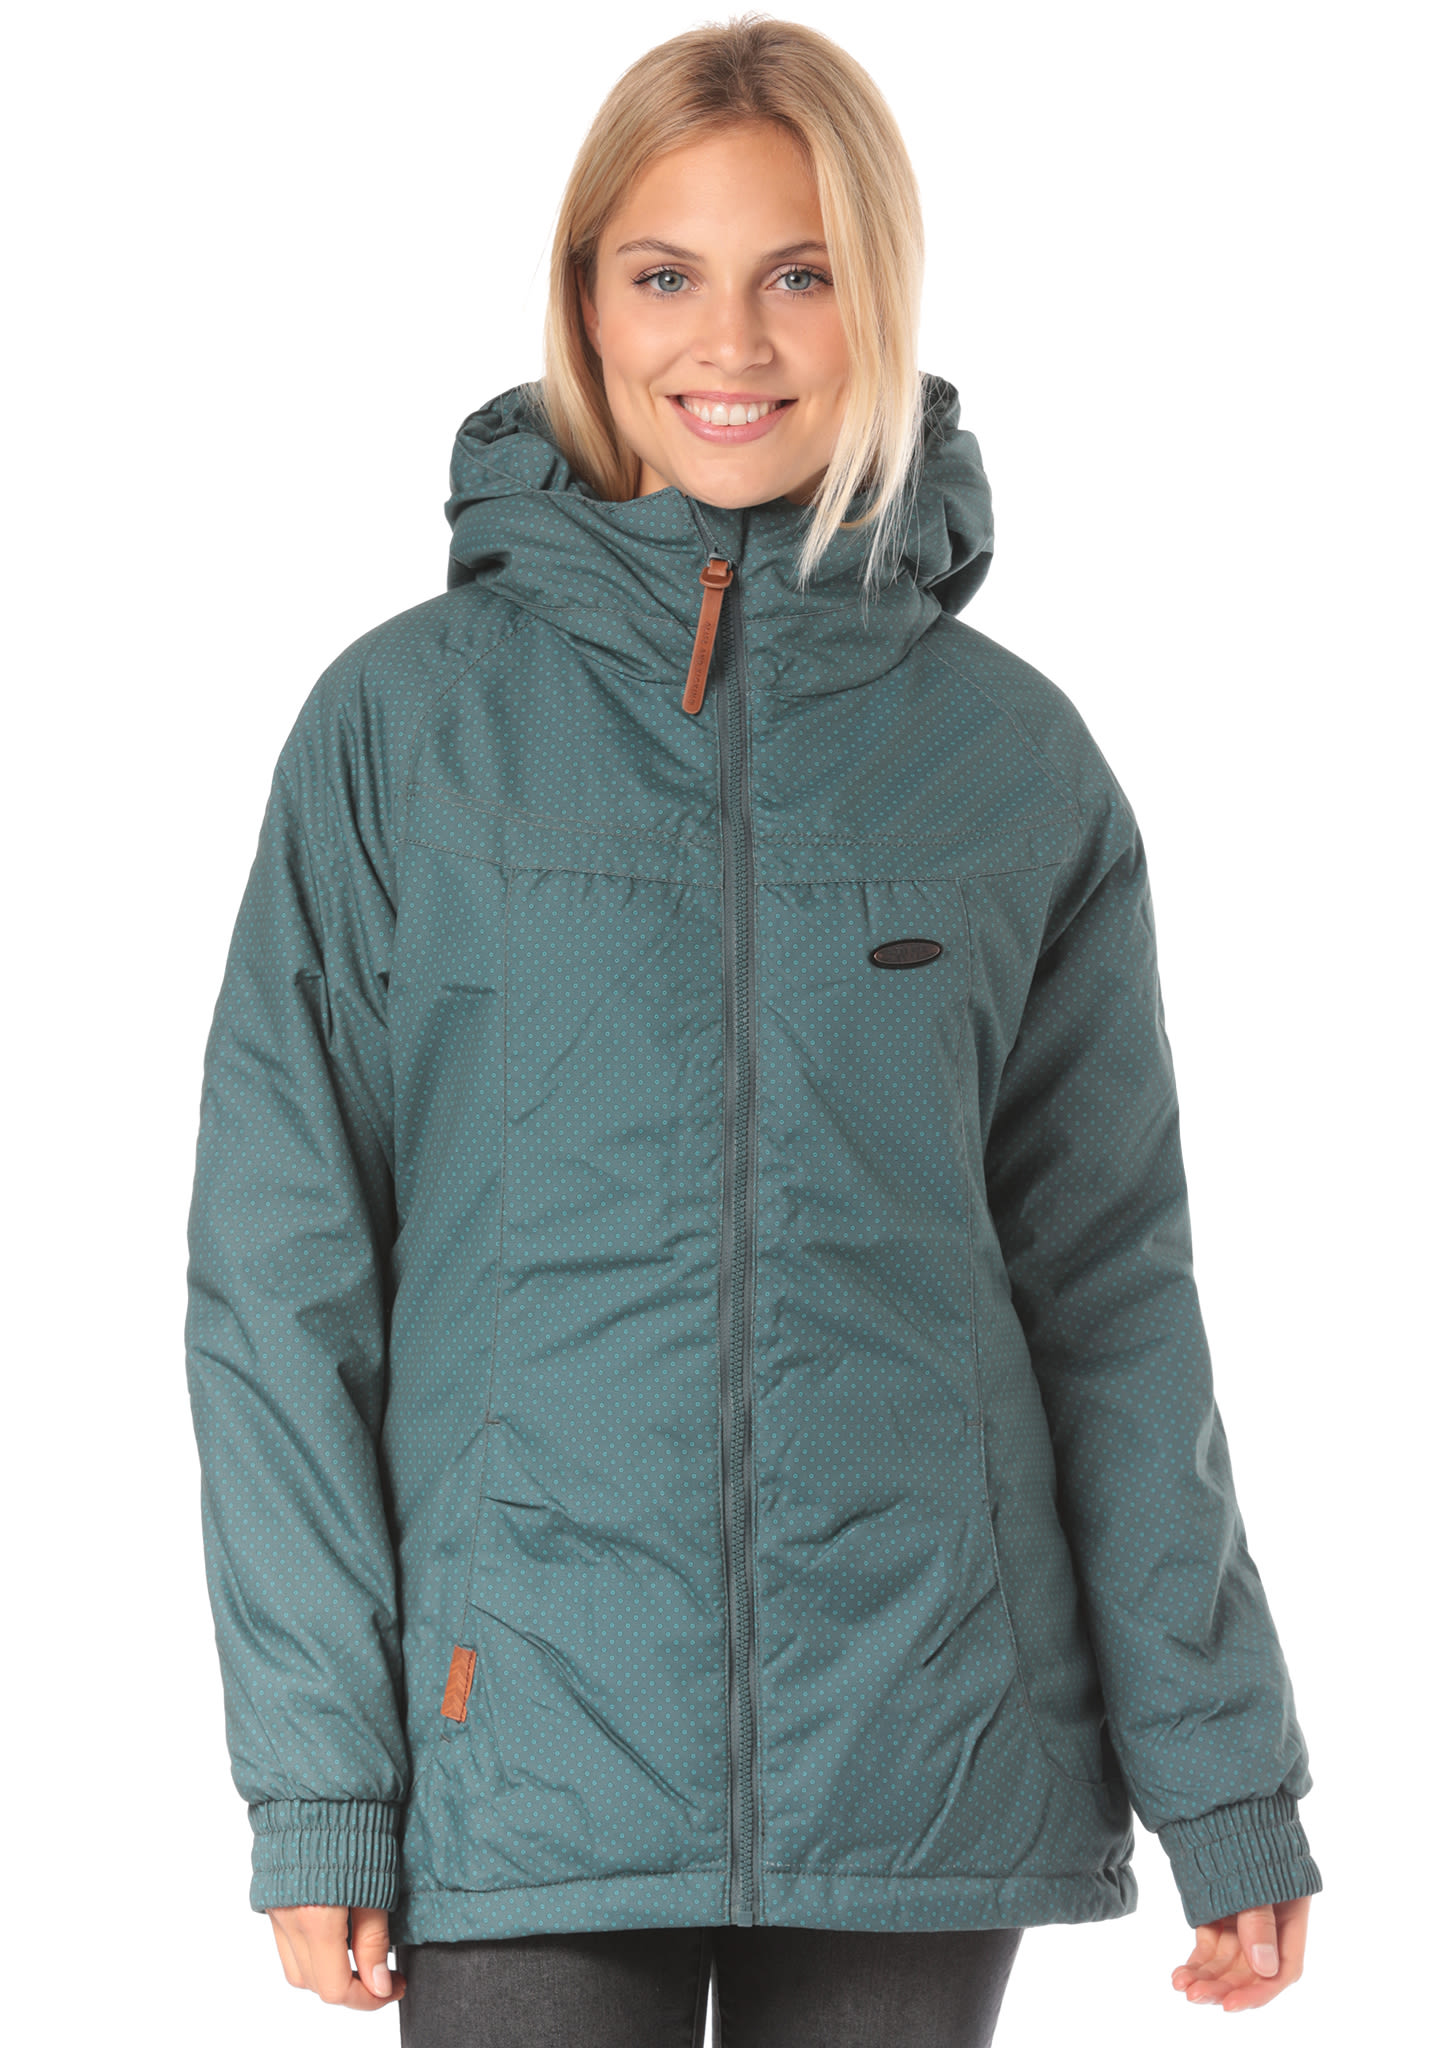 ALIFE AND KICKIN Black Mamba A - Jacket for Women - Green - Planet Sports